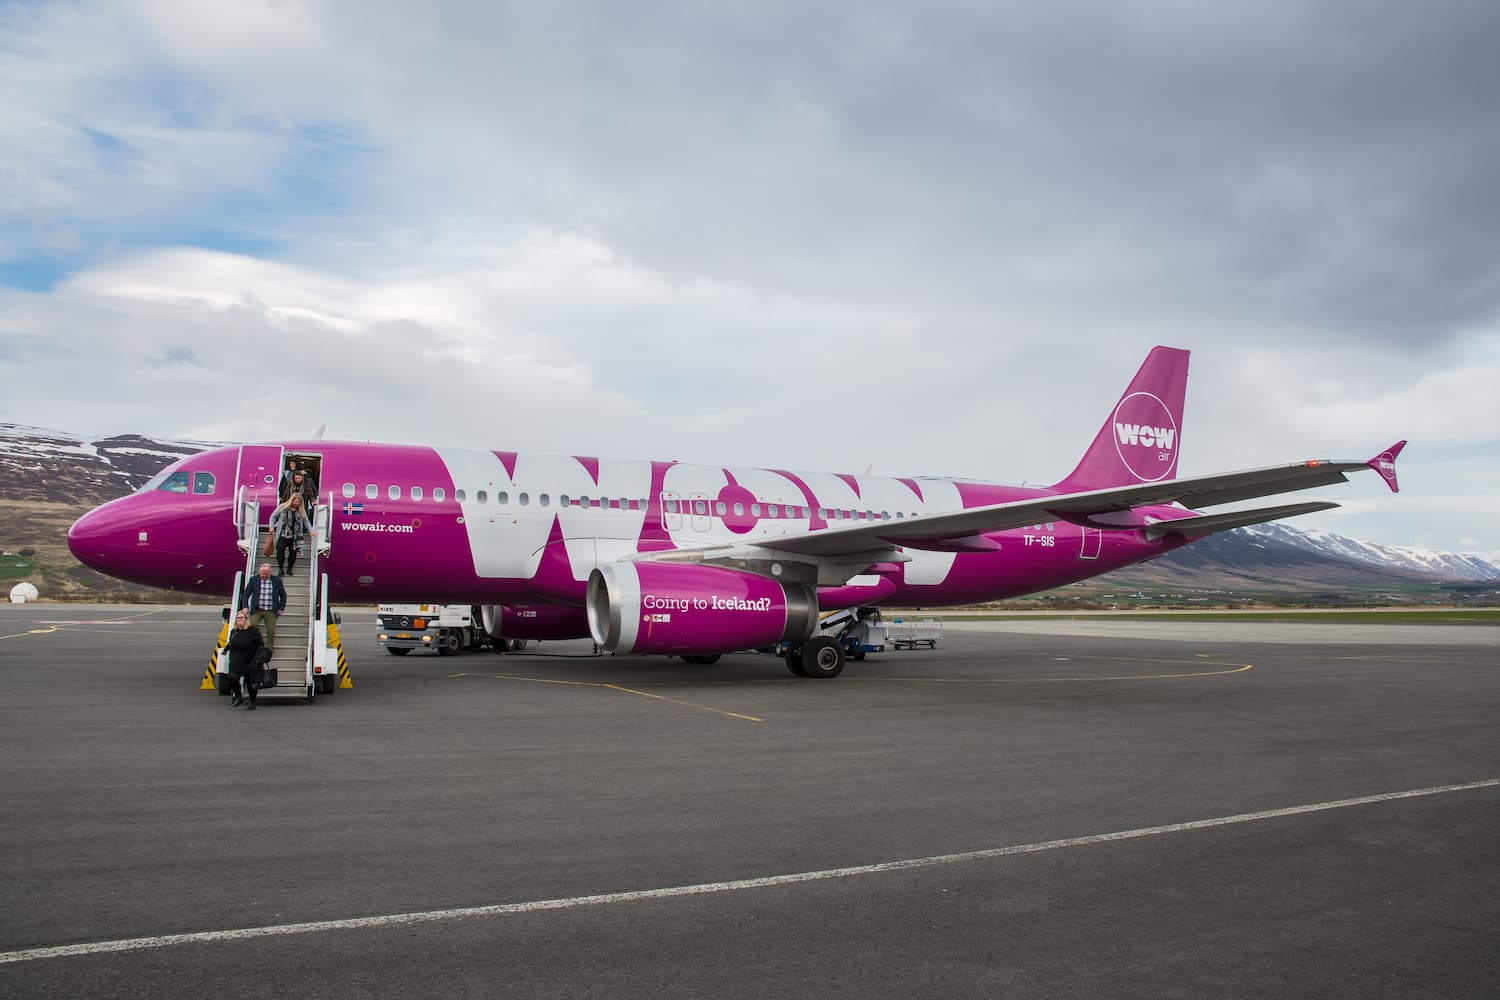 Long-Haul, Low-Cost: Can This Business Model Ever Succeed?